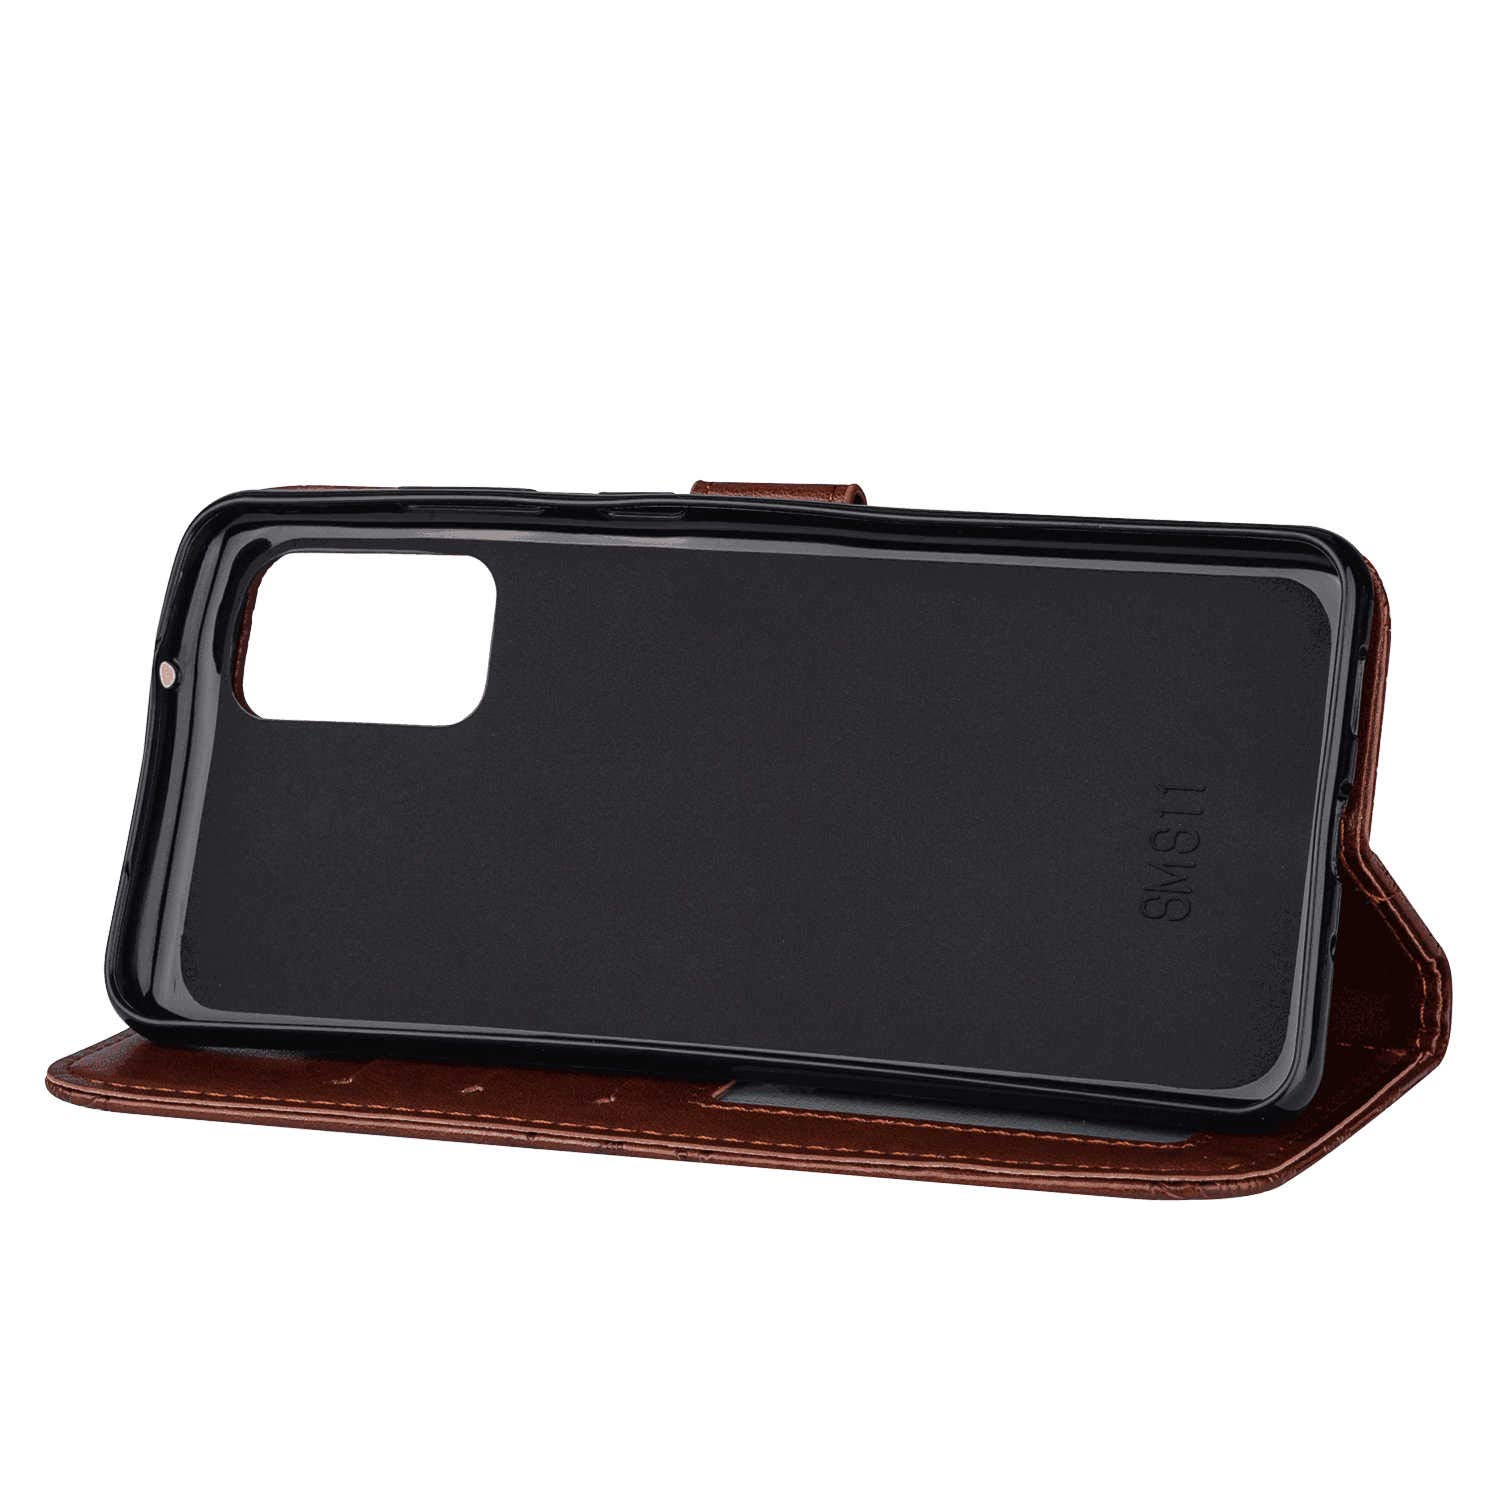 Stylish Cover Compatible with Samsung Galaxy A70 Brown Leather Flip Case Wallet for Samsung Galaxy A70